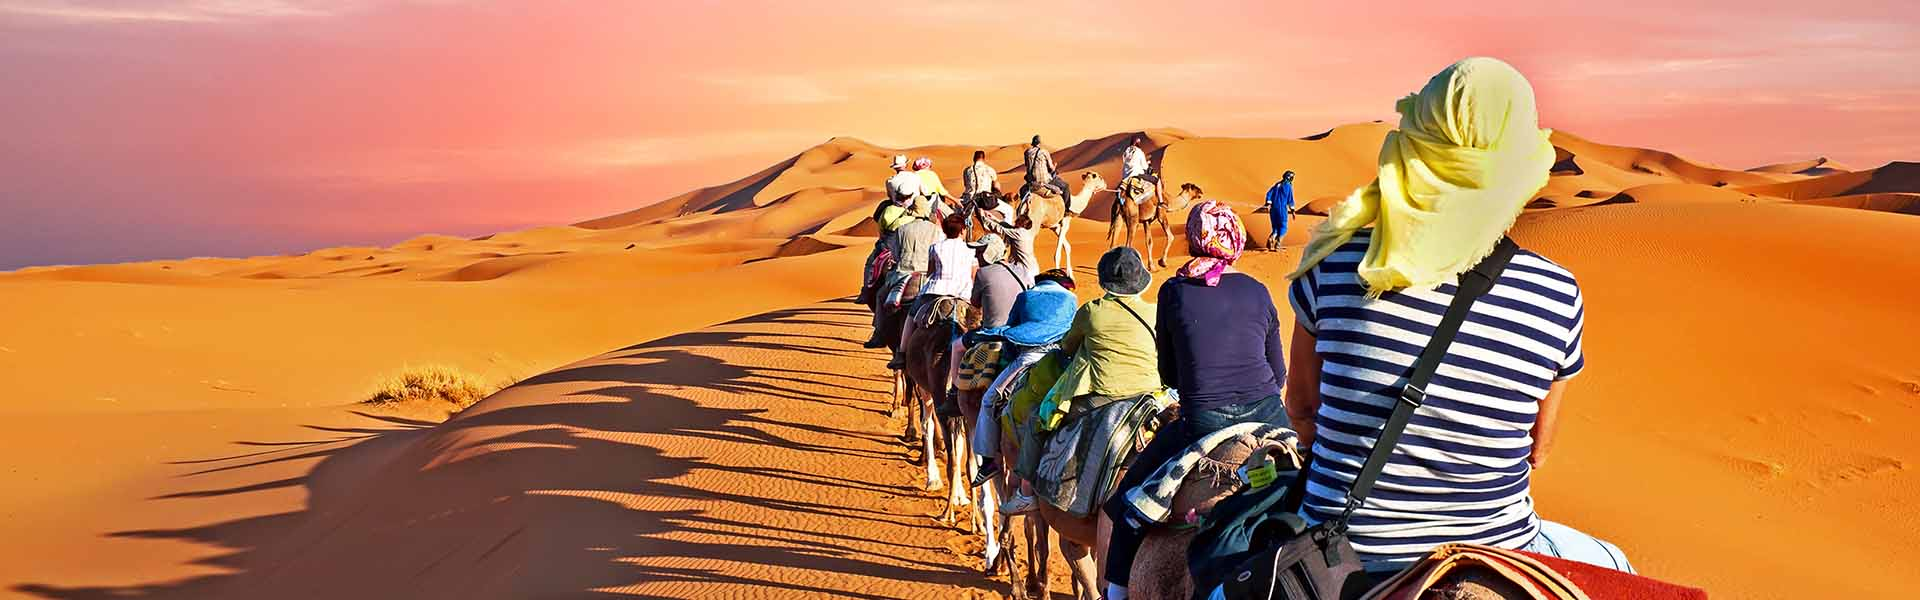 Wild and wonderful Morocco